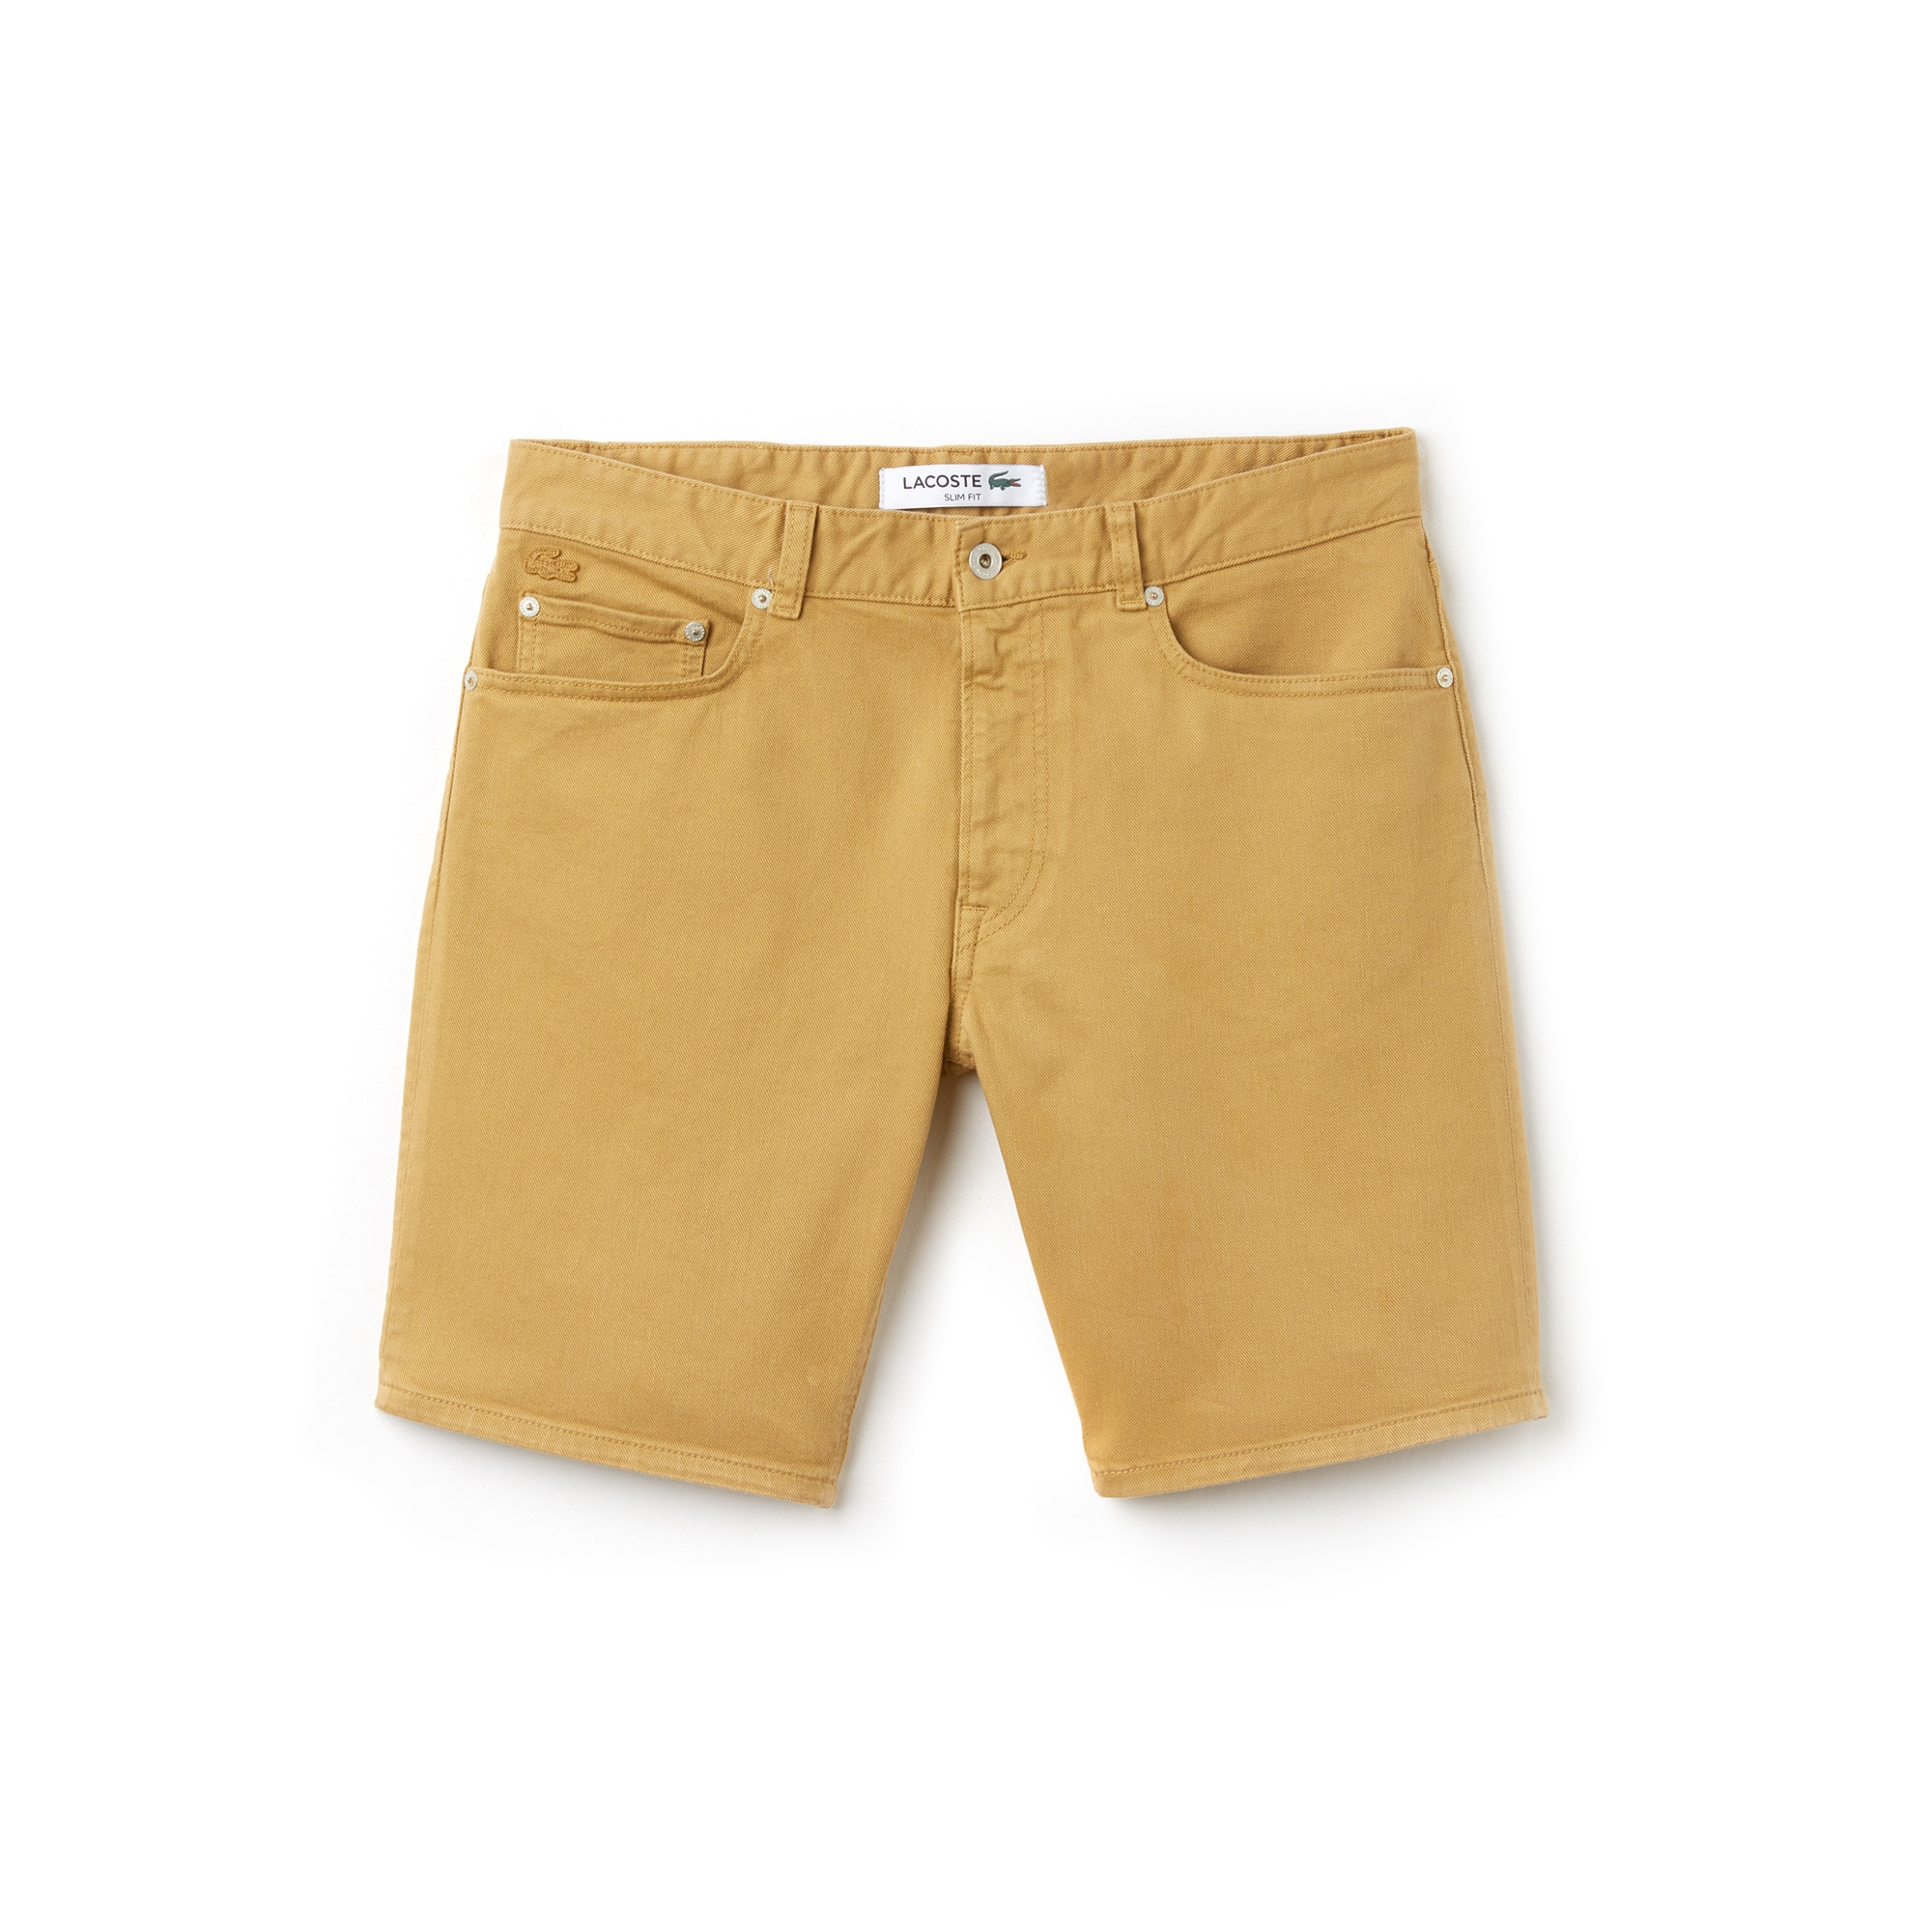 Men's Slim Fit 5 Pocket Stretch Twill Bermuda Shorts